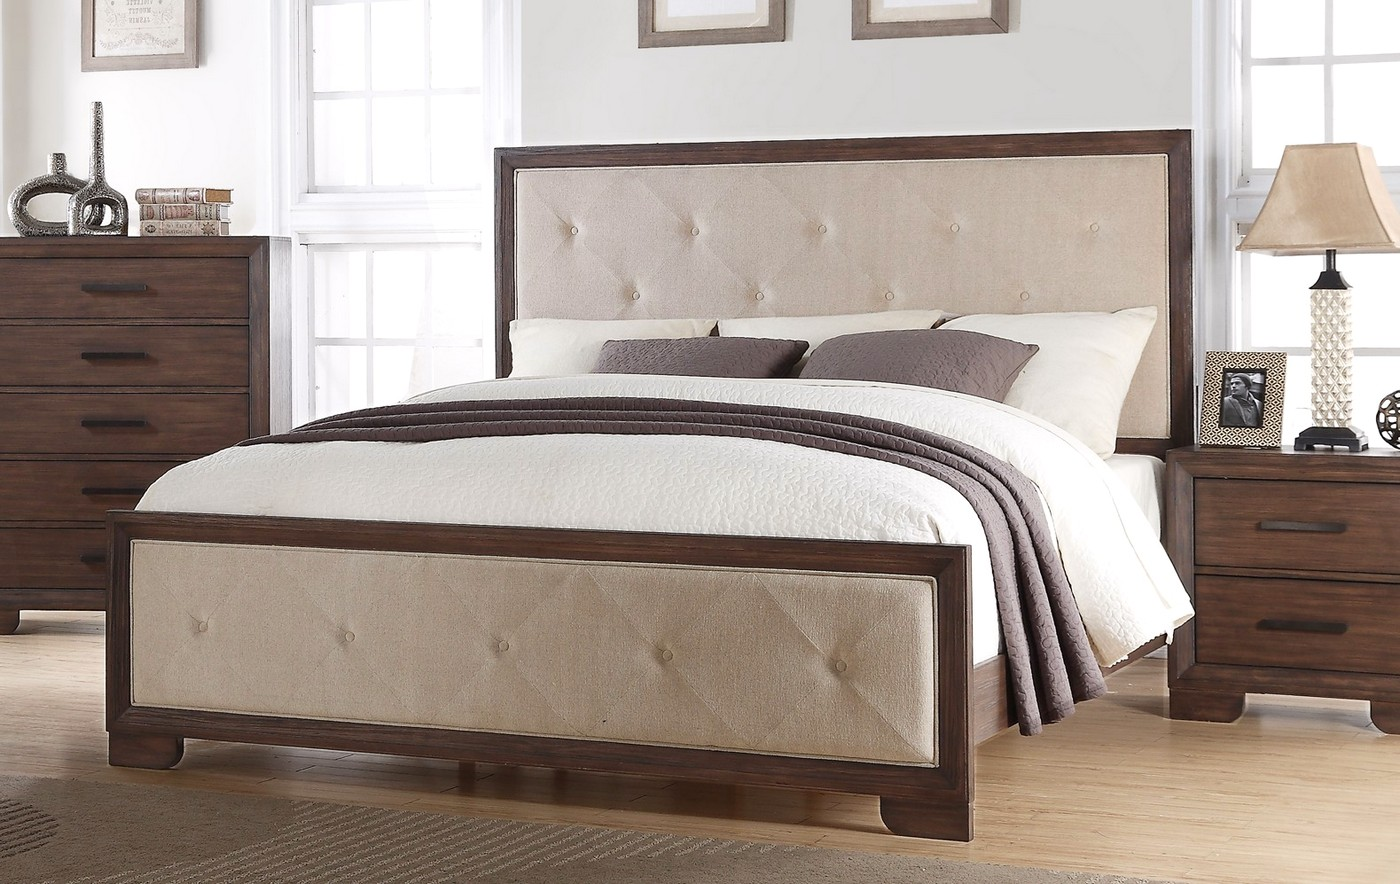 Denali Modern Diamond Patterned 4 Pc California King Bed Set In A Wood Finish